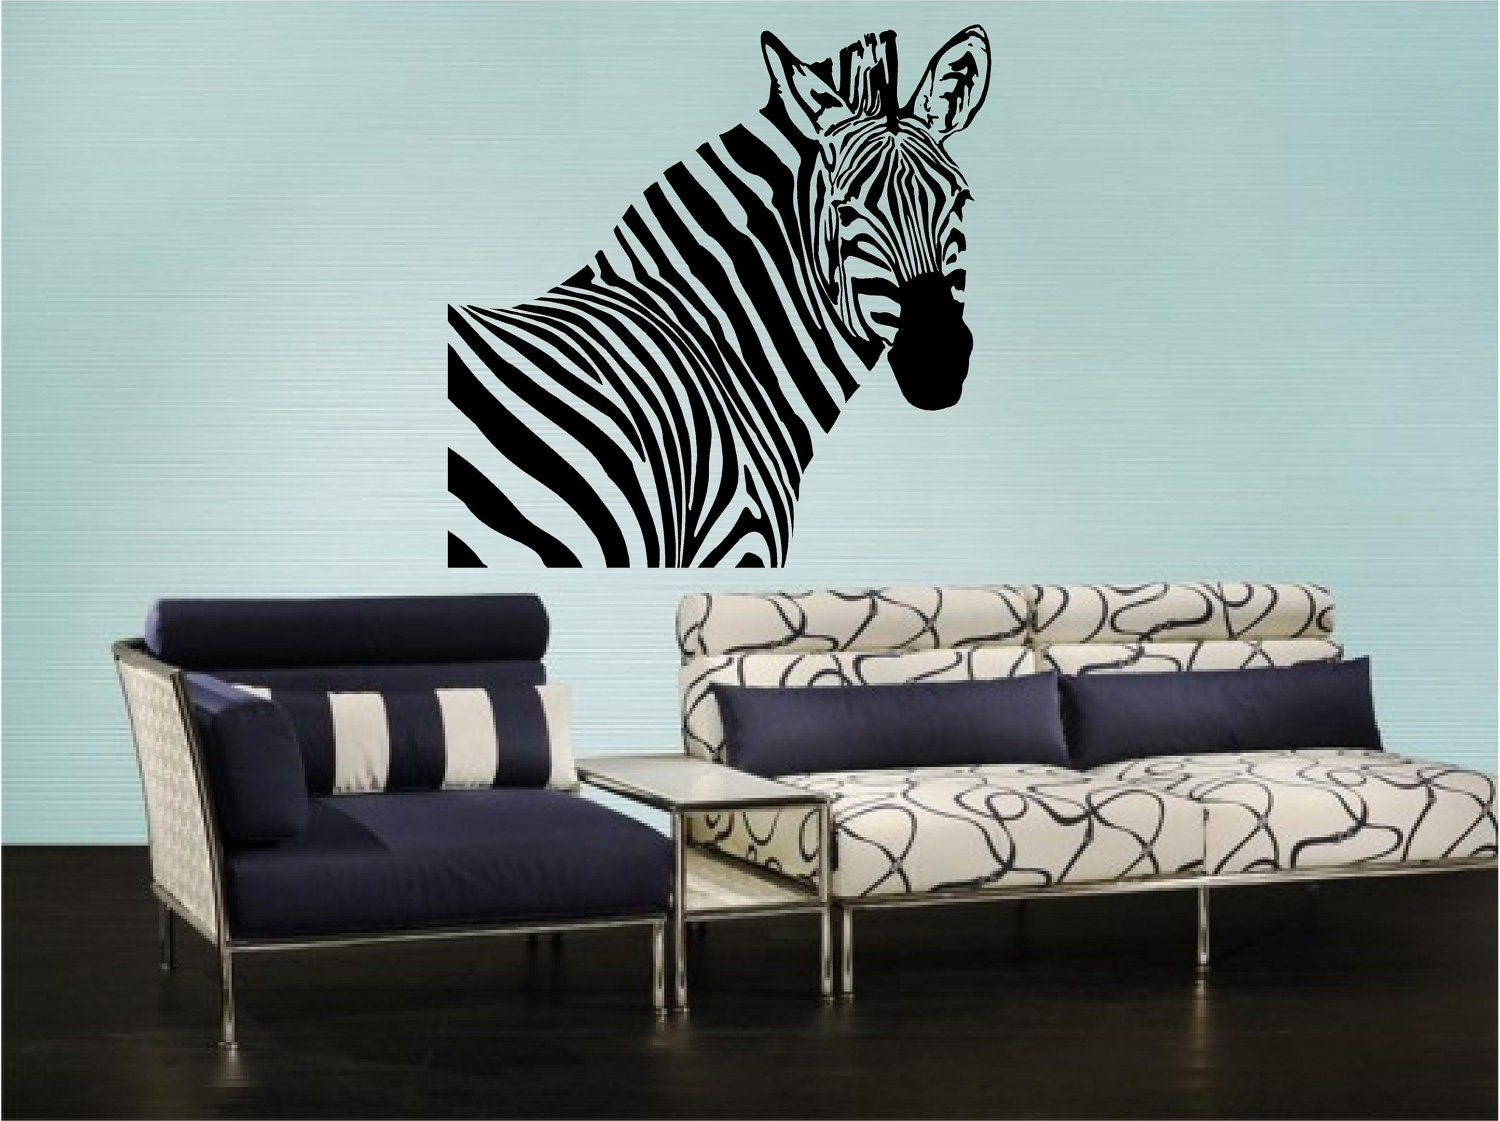 Zebra Head Wall Decor : Zebra head vinyl wall art decal by pasargad on etsy